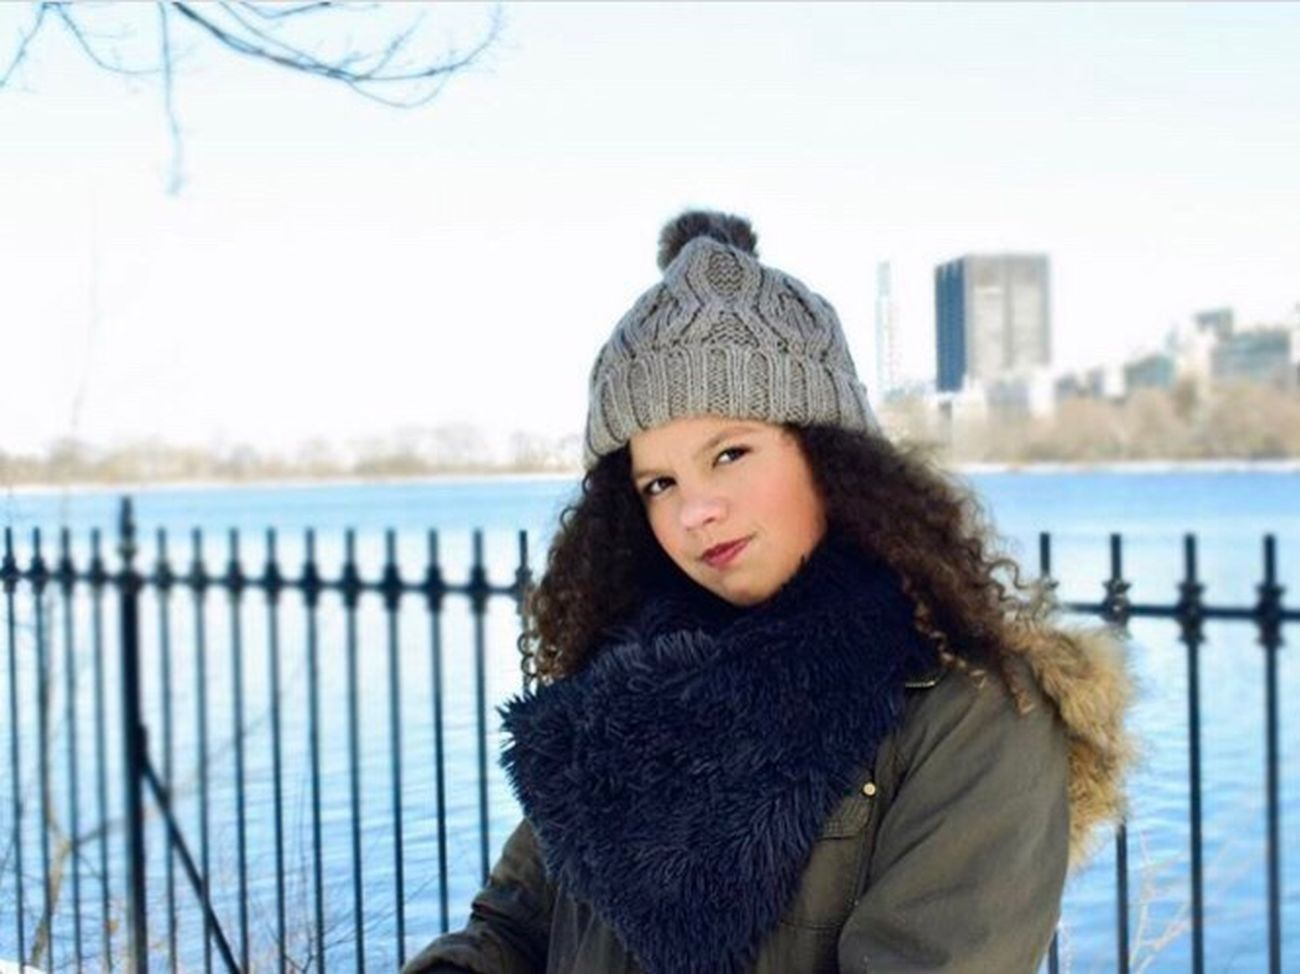 Winter Warm Clothing Looking At Camera Portrait Outdoors Cold Temperature Sweater Beautiful Woman New York City Knit Hat